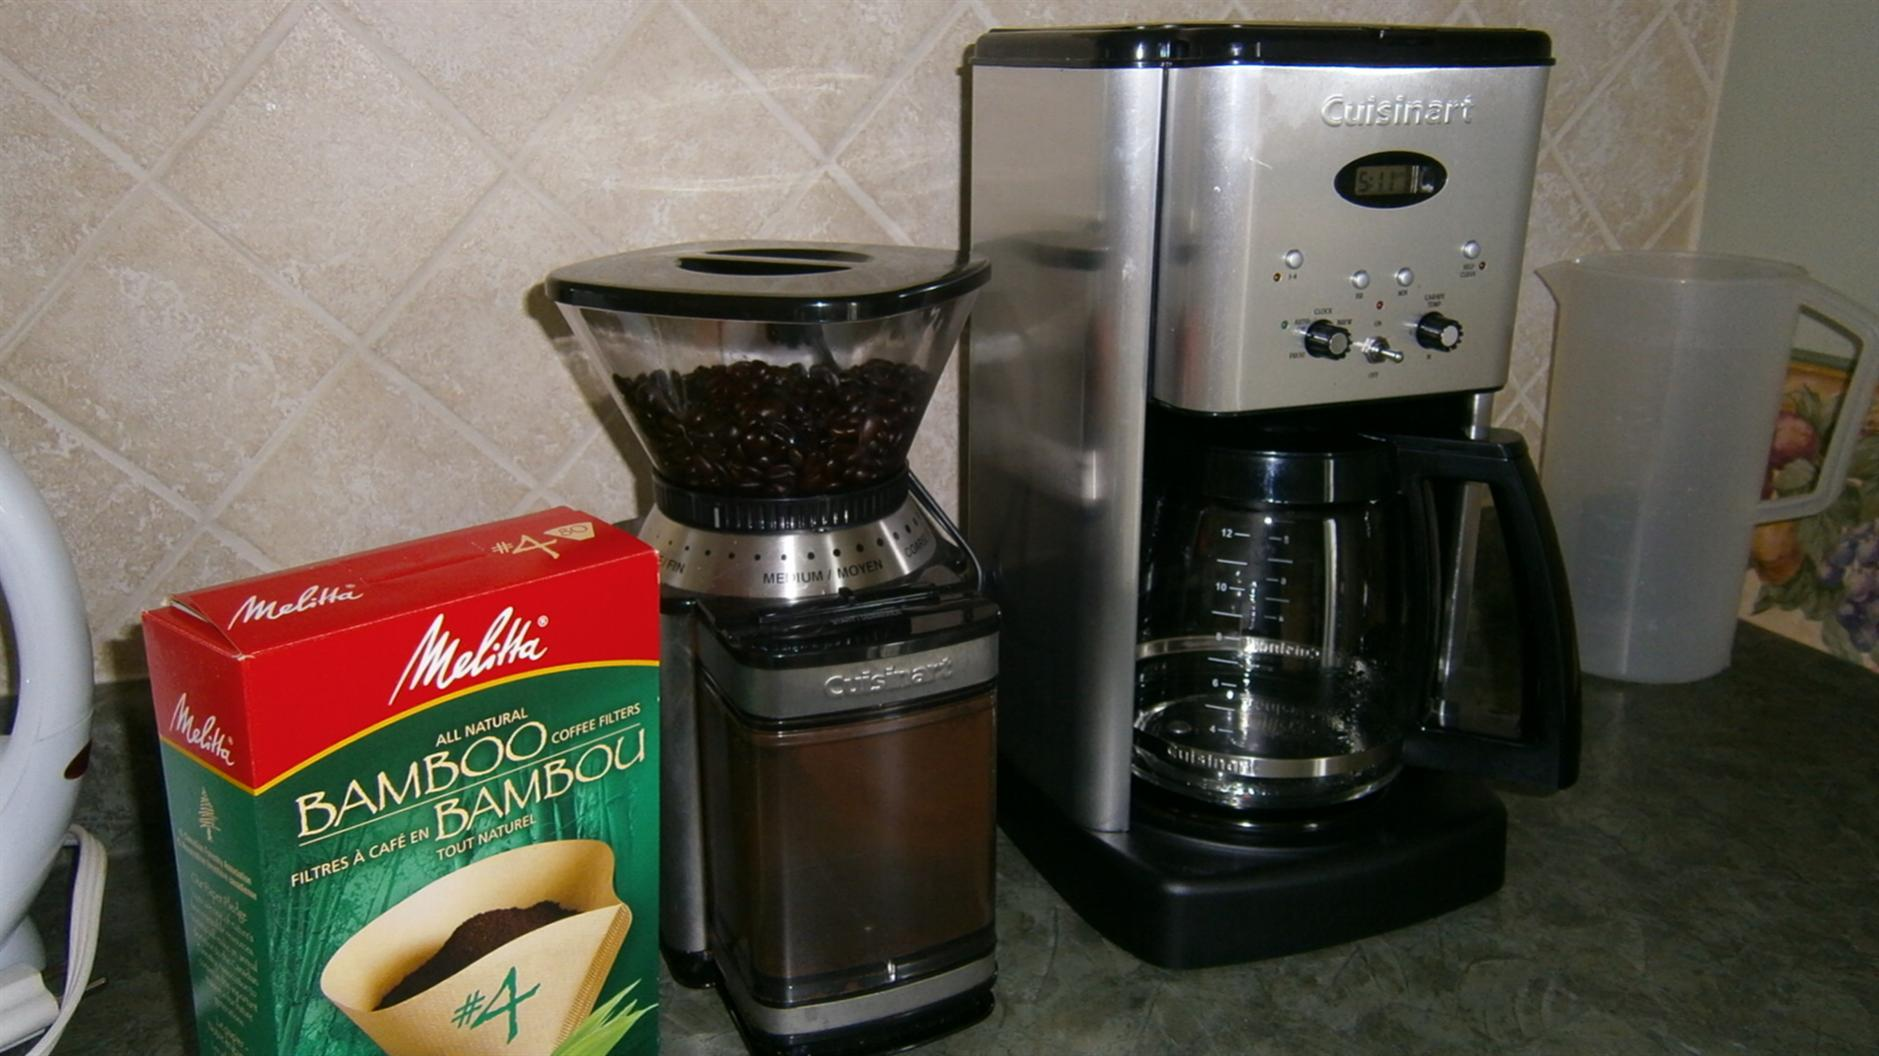 Can You Recommend A Good Coffee Maker Polk Audio Schematic Diagram Besides For Bunn